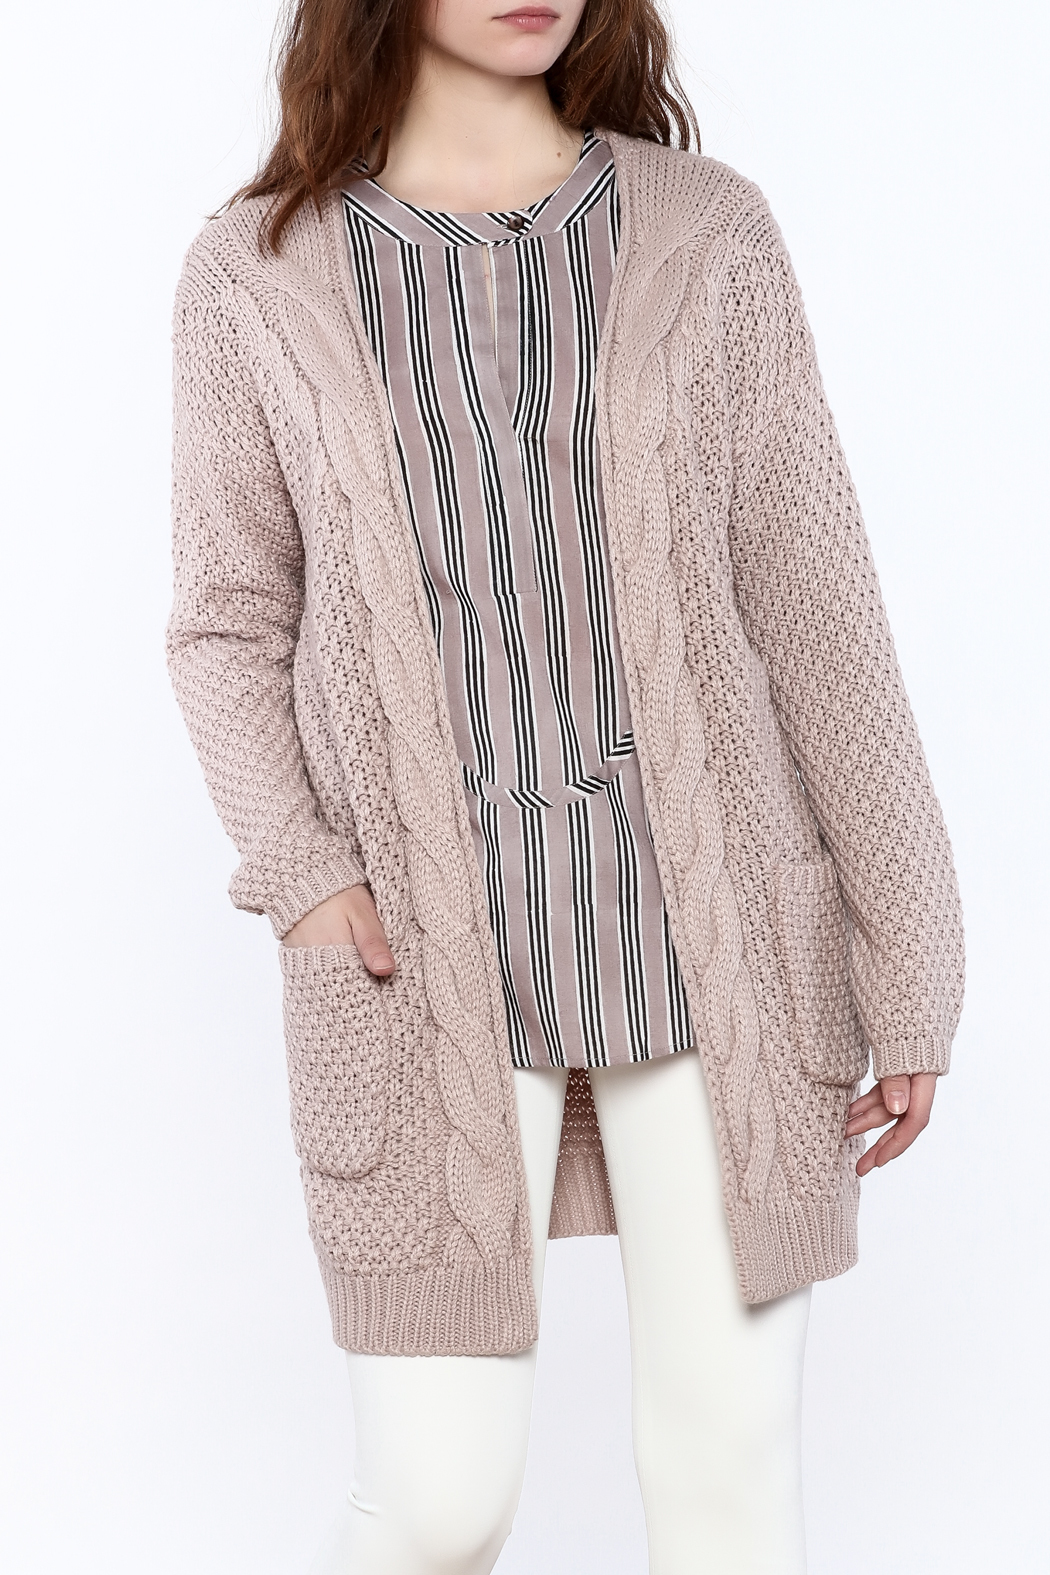 Wishlist Mauve Cable-Knit Cardigan from Connecticut by Deja Vu ...